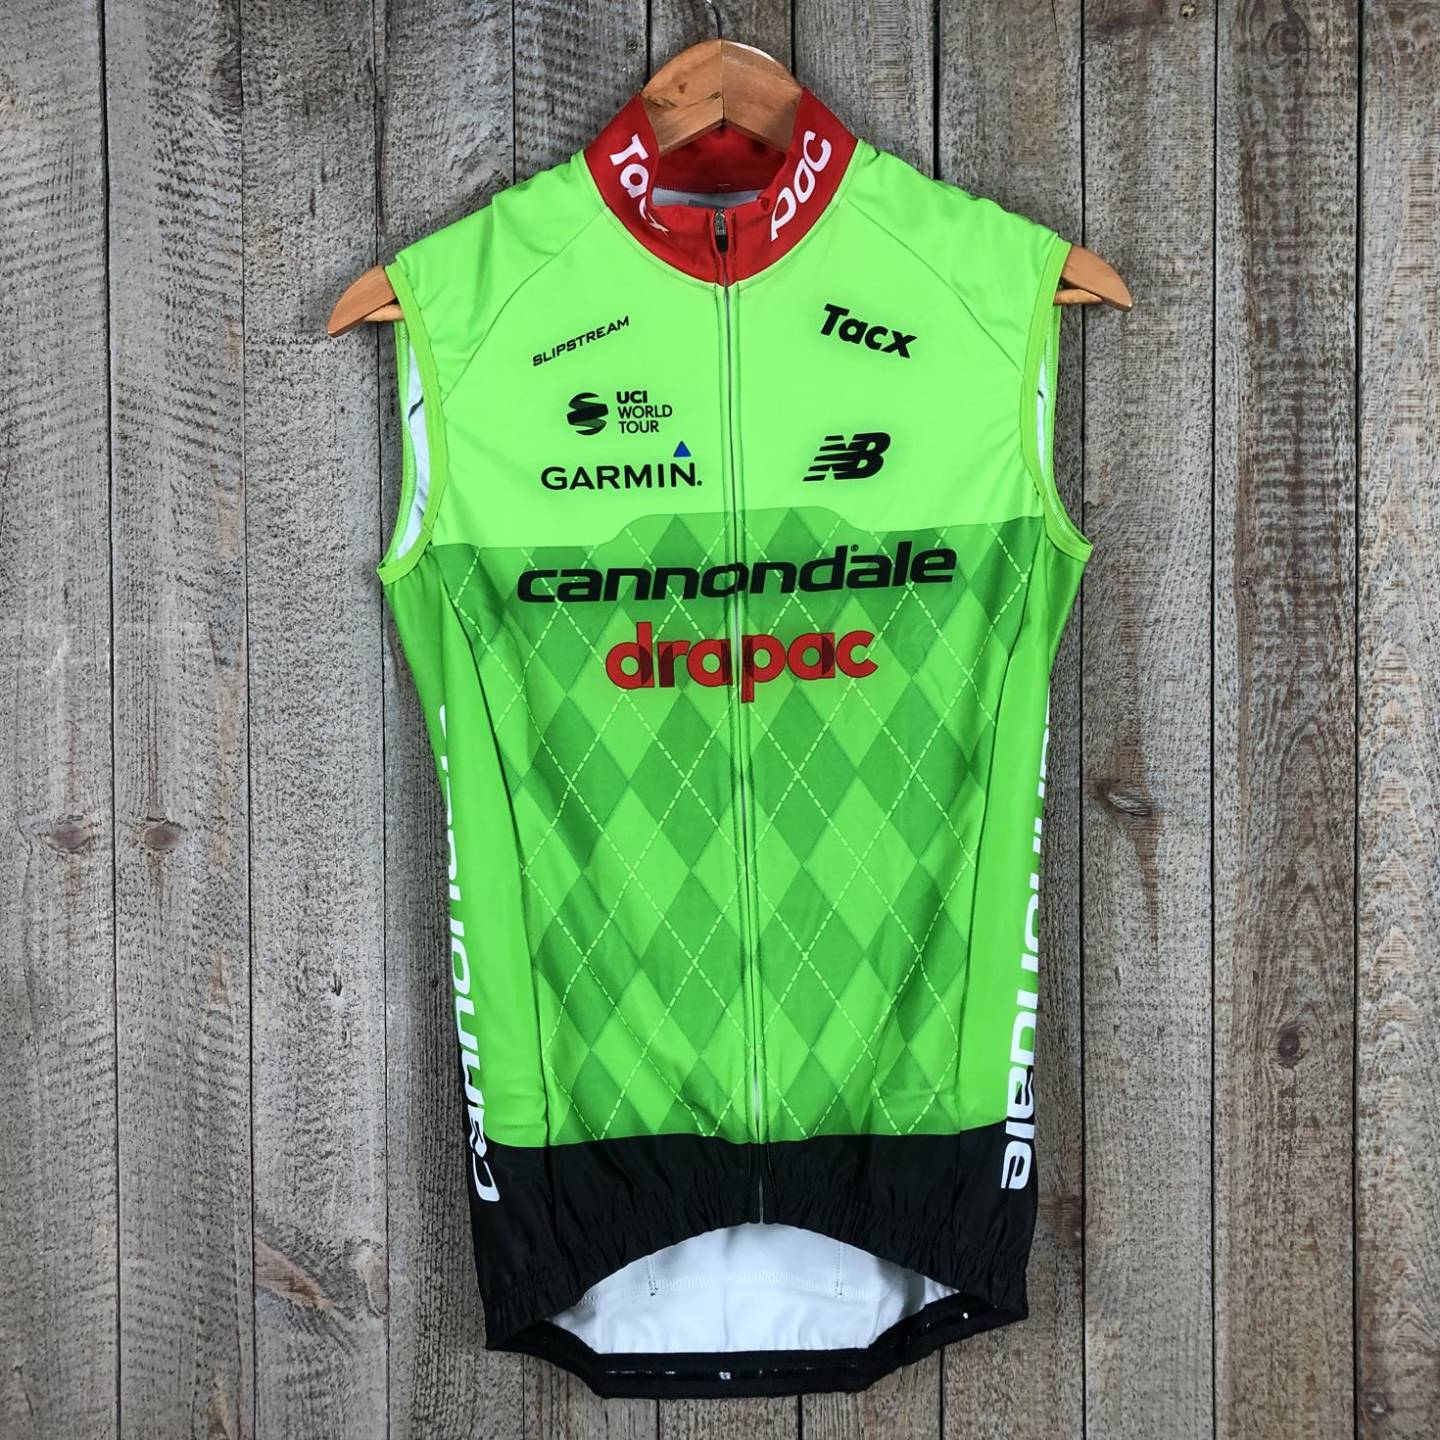 Thermal Vest - Cannondale Drapac Green 00002749 (1)